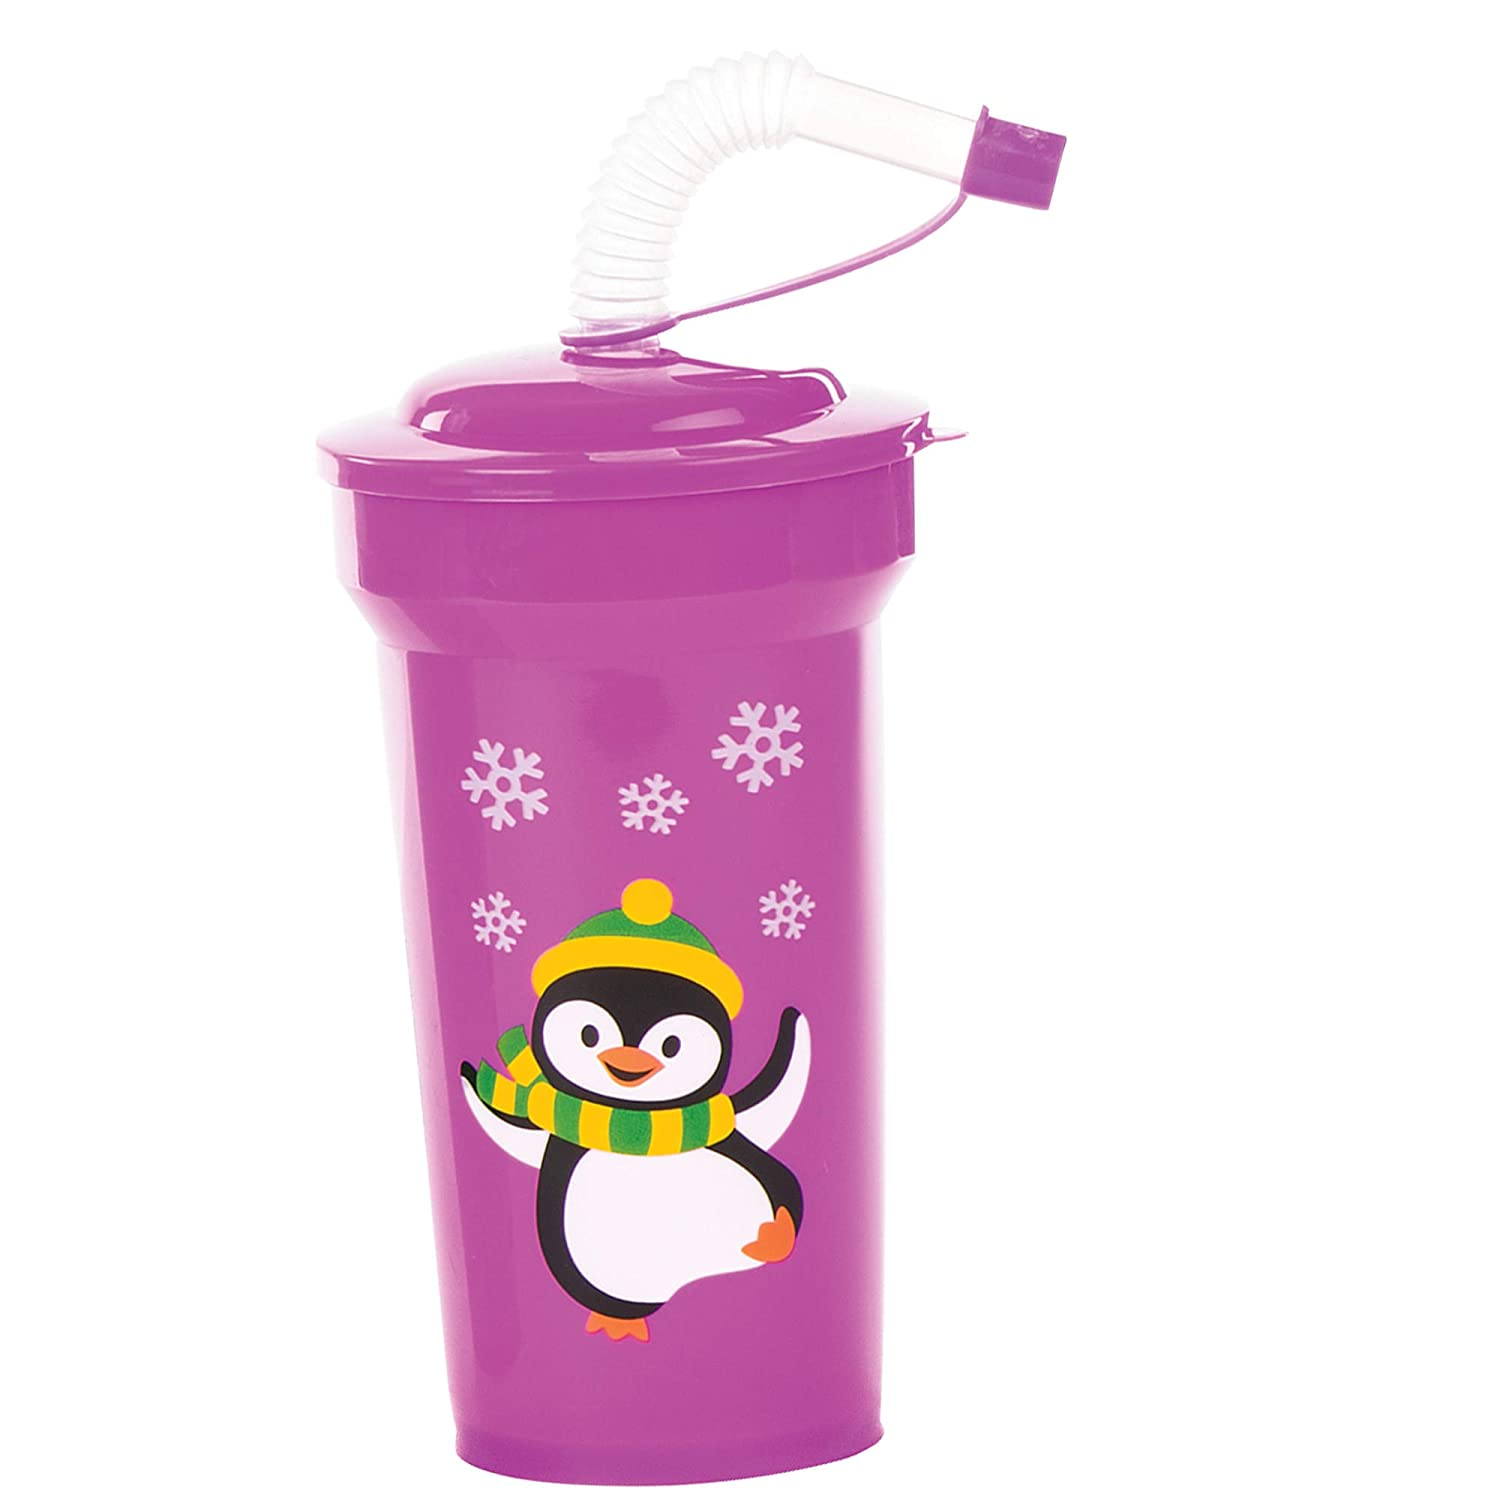 Gifts Baker Ross AV808 Christmas Bendy Straw Cups Ideal for Party Bag Fillers Kids Prizes Pack of 4